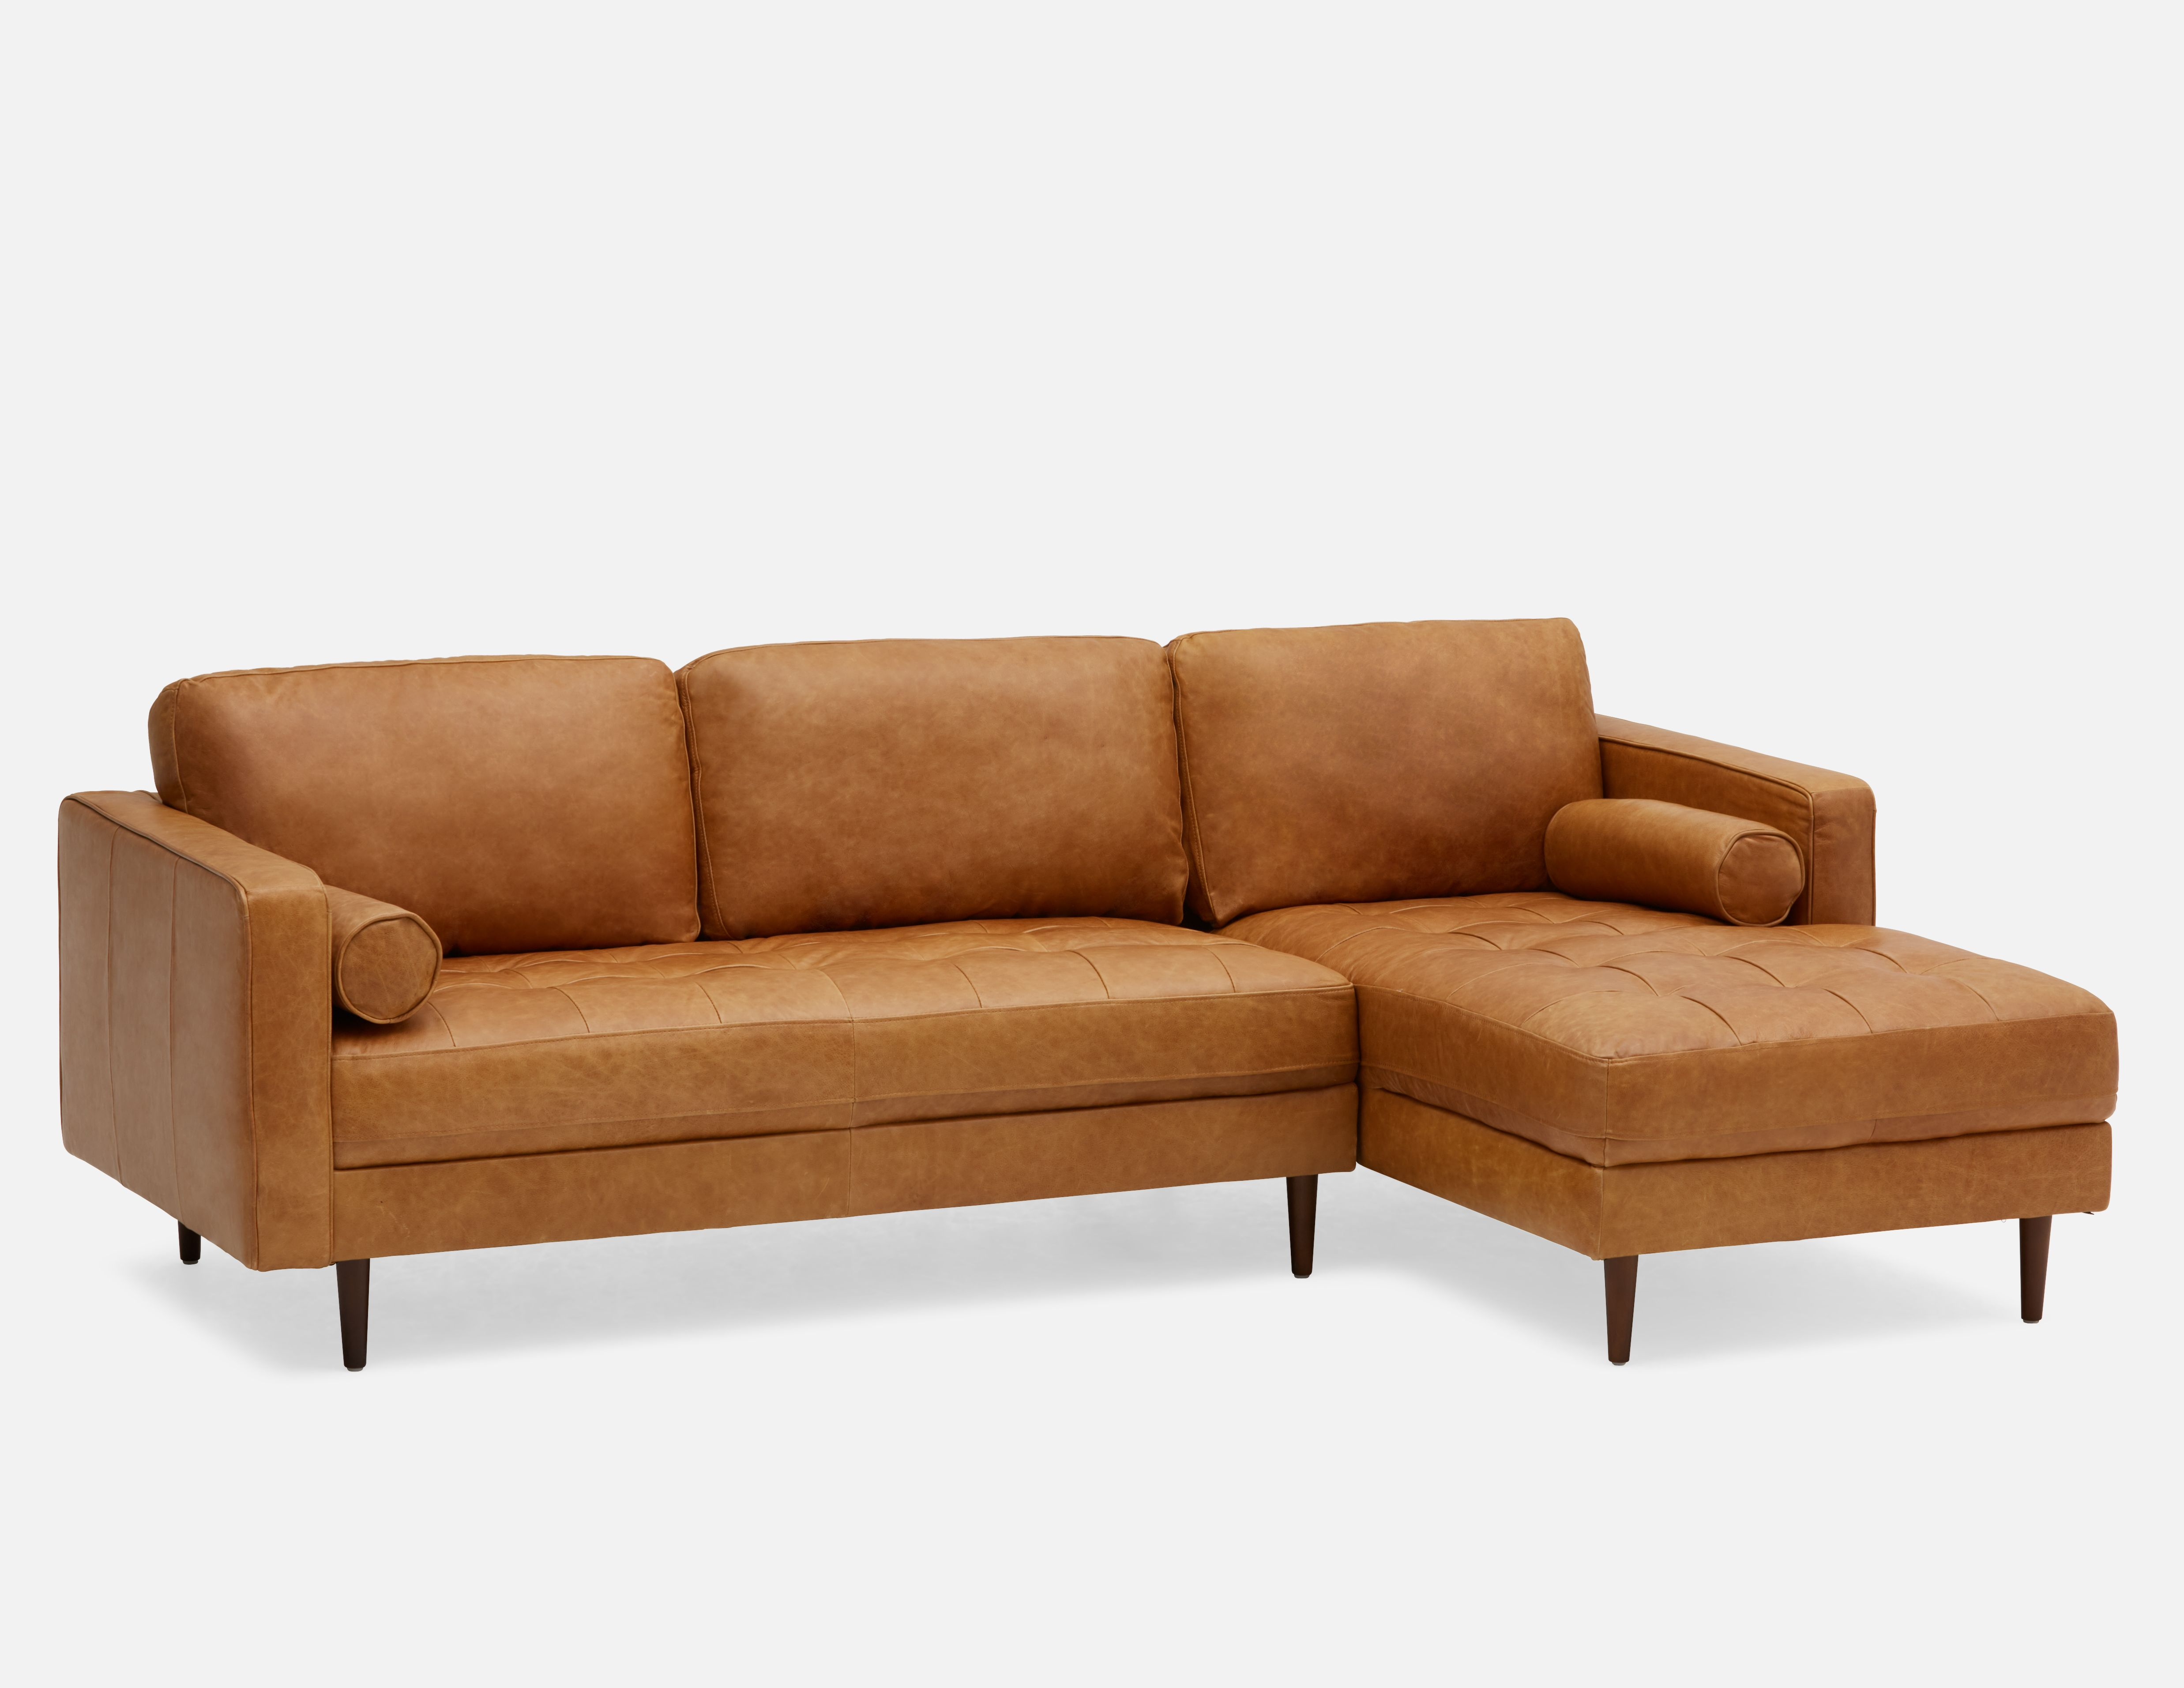 Kinsey Copper Right Facing 100 Leather Sectional Sofa Leather Sectional Sofa Leather Sectional Leather Sectional Sofas